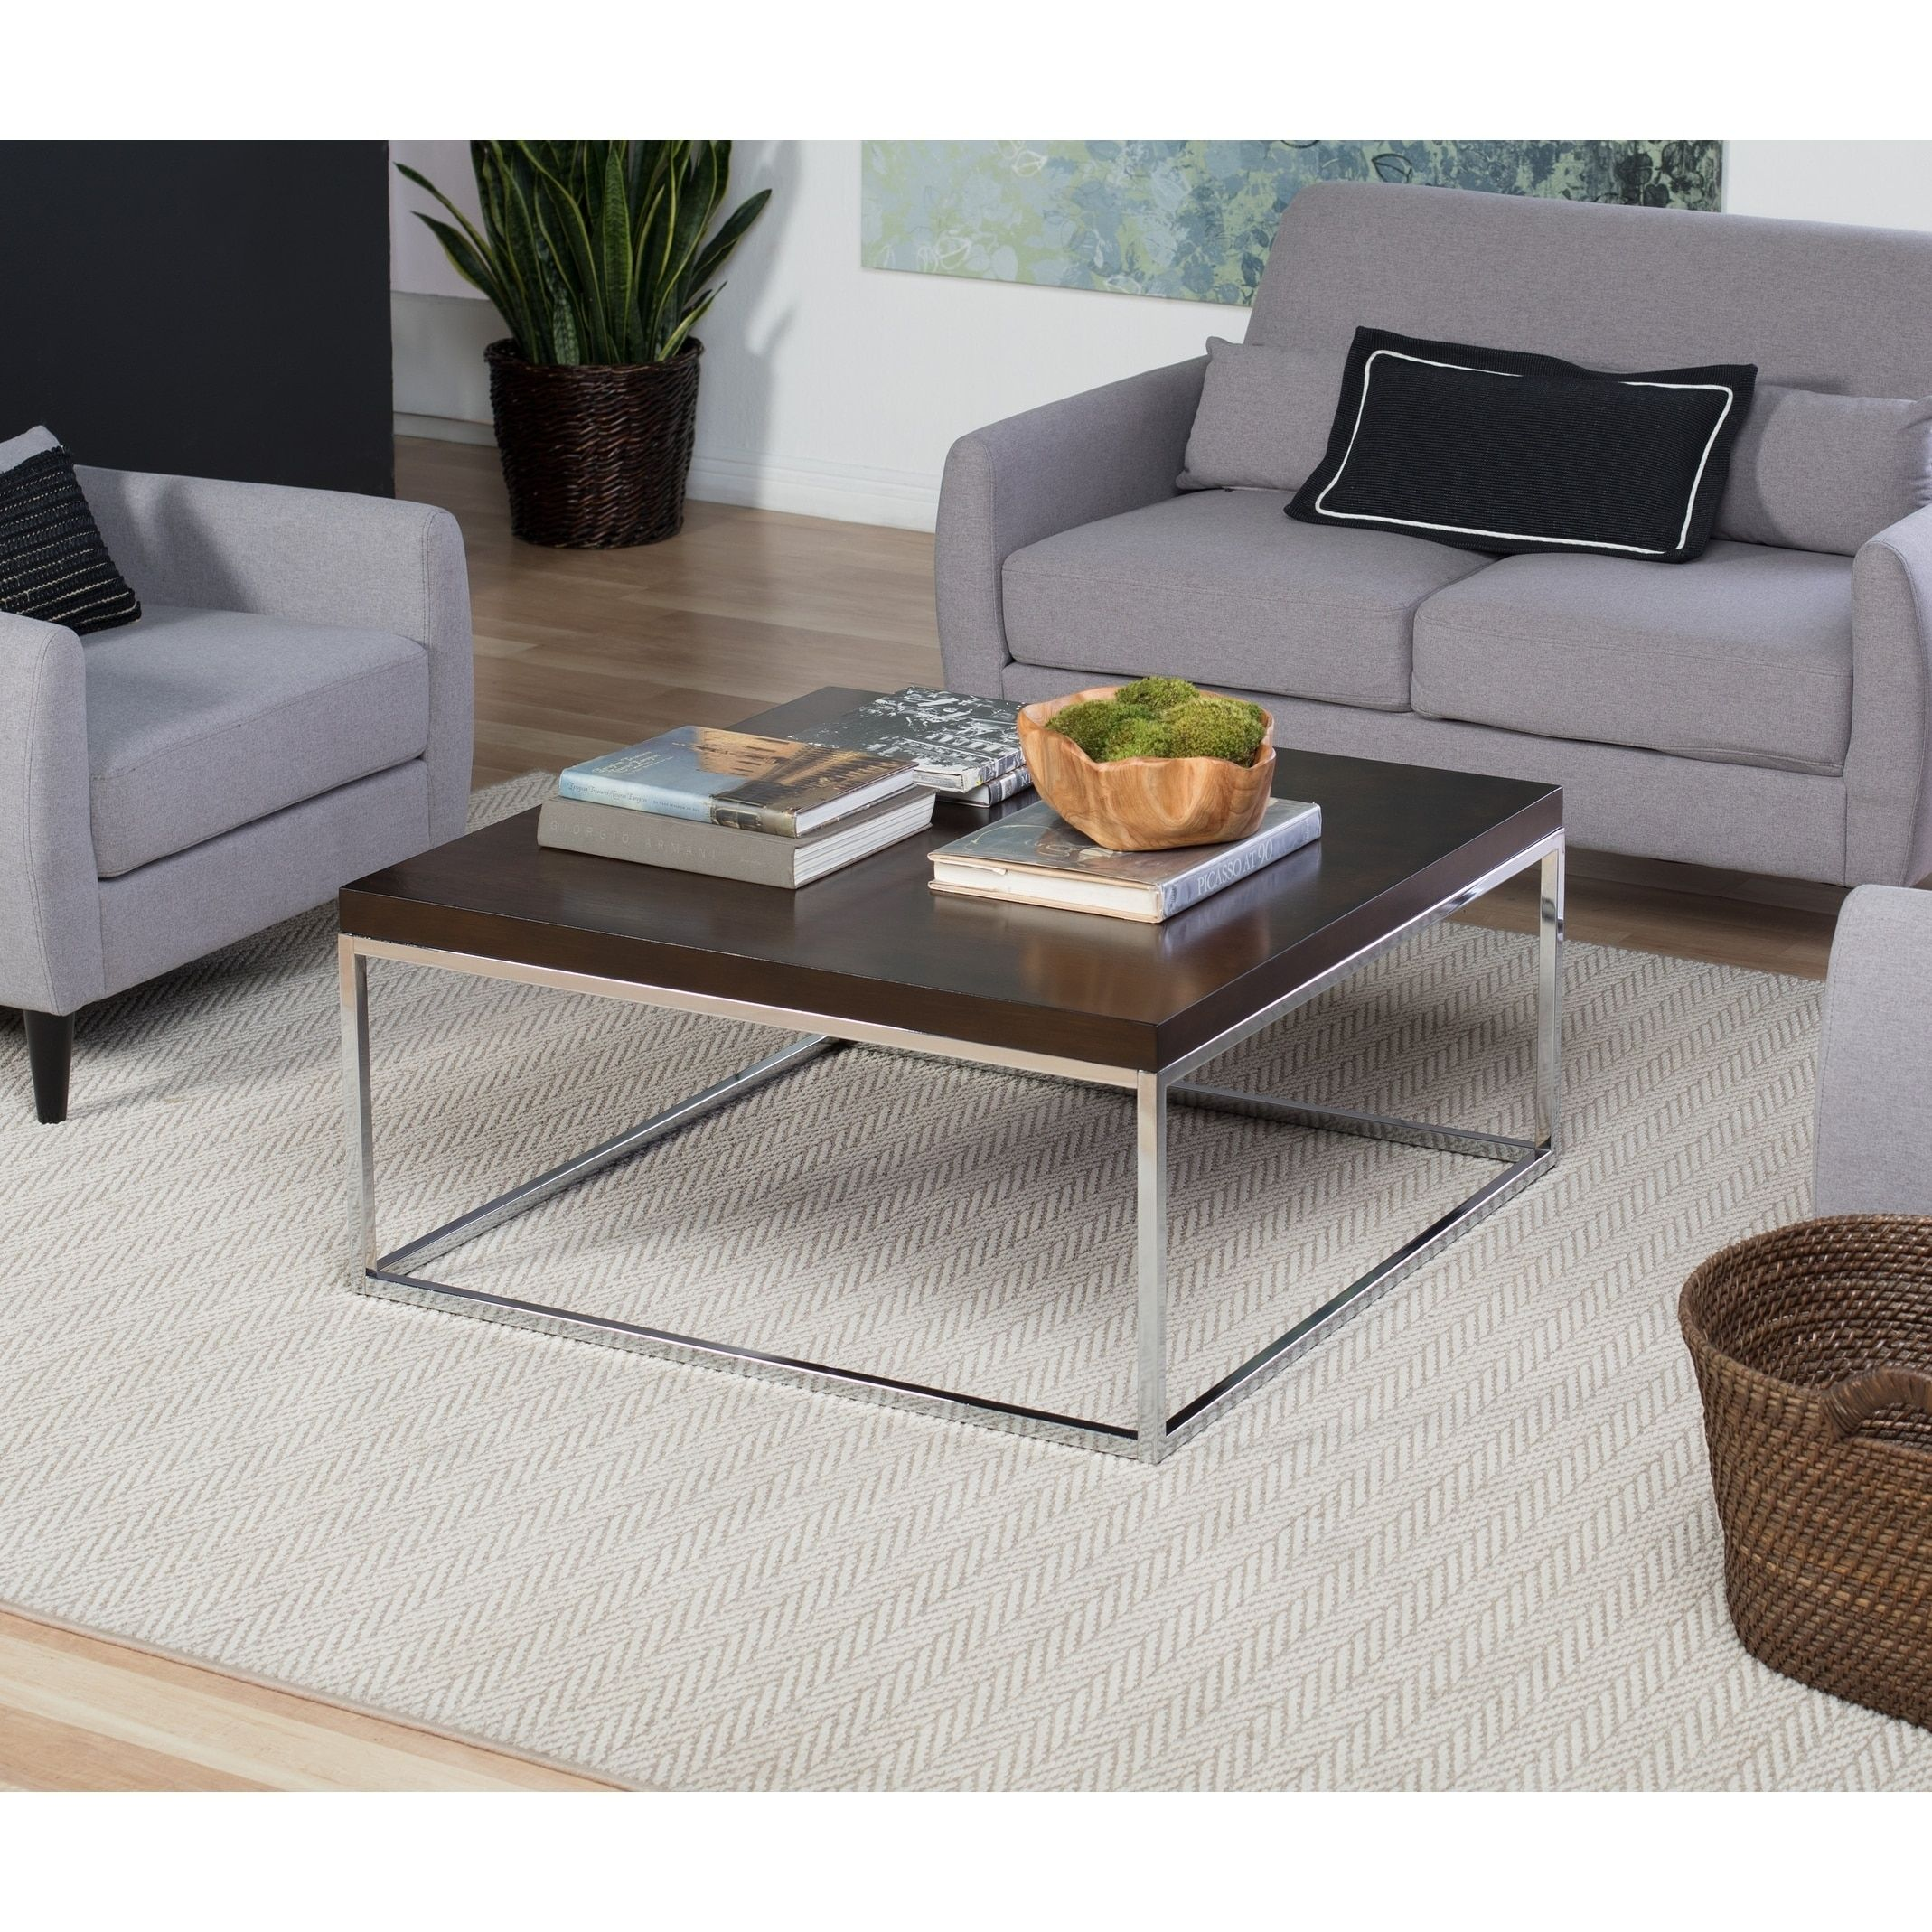 Studio designs home pergola 36 inch square coffee table 3 and 4 studio designs home pergola 36 inch square coffee table geotapseo Image collections